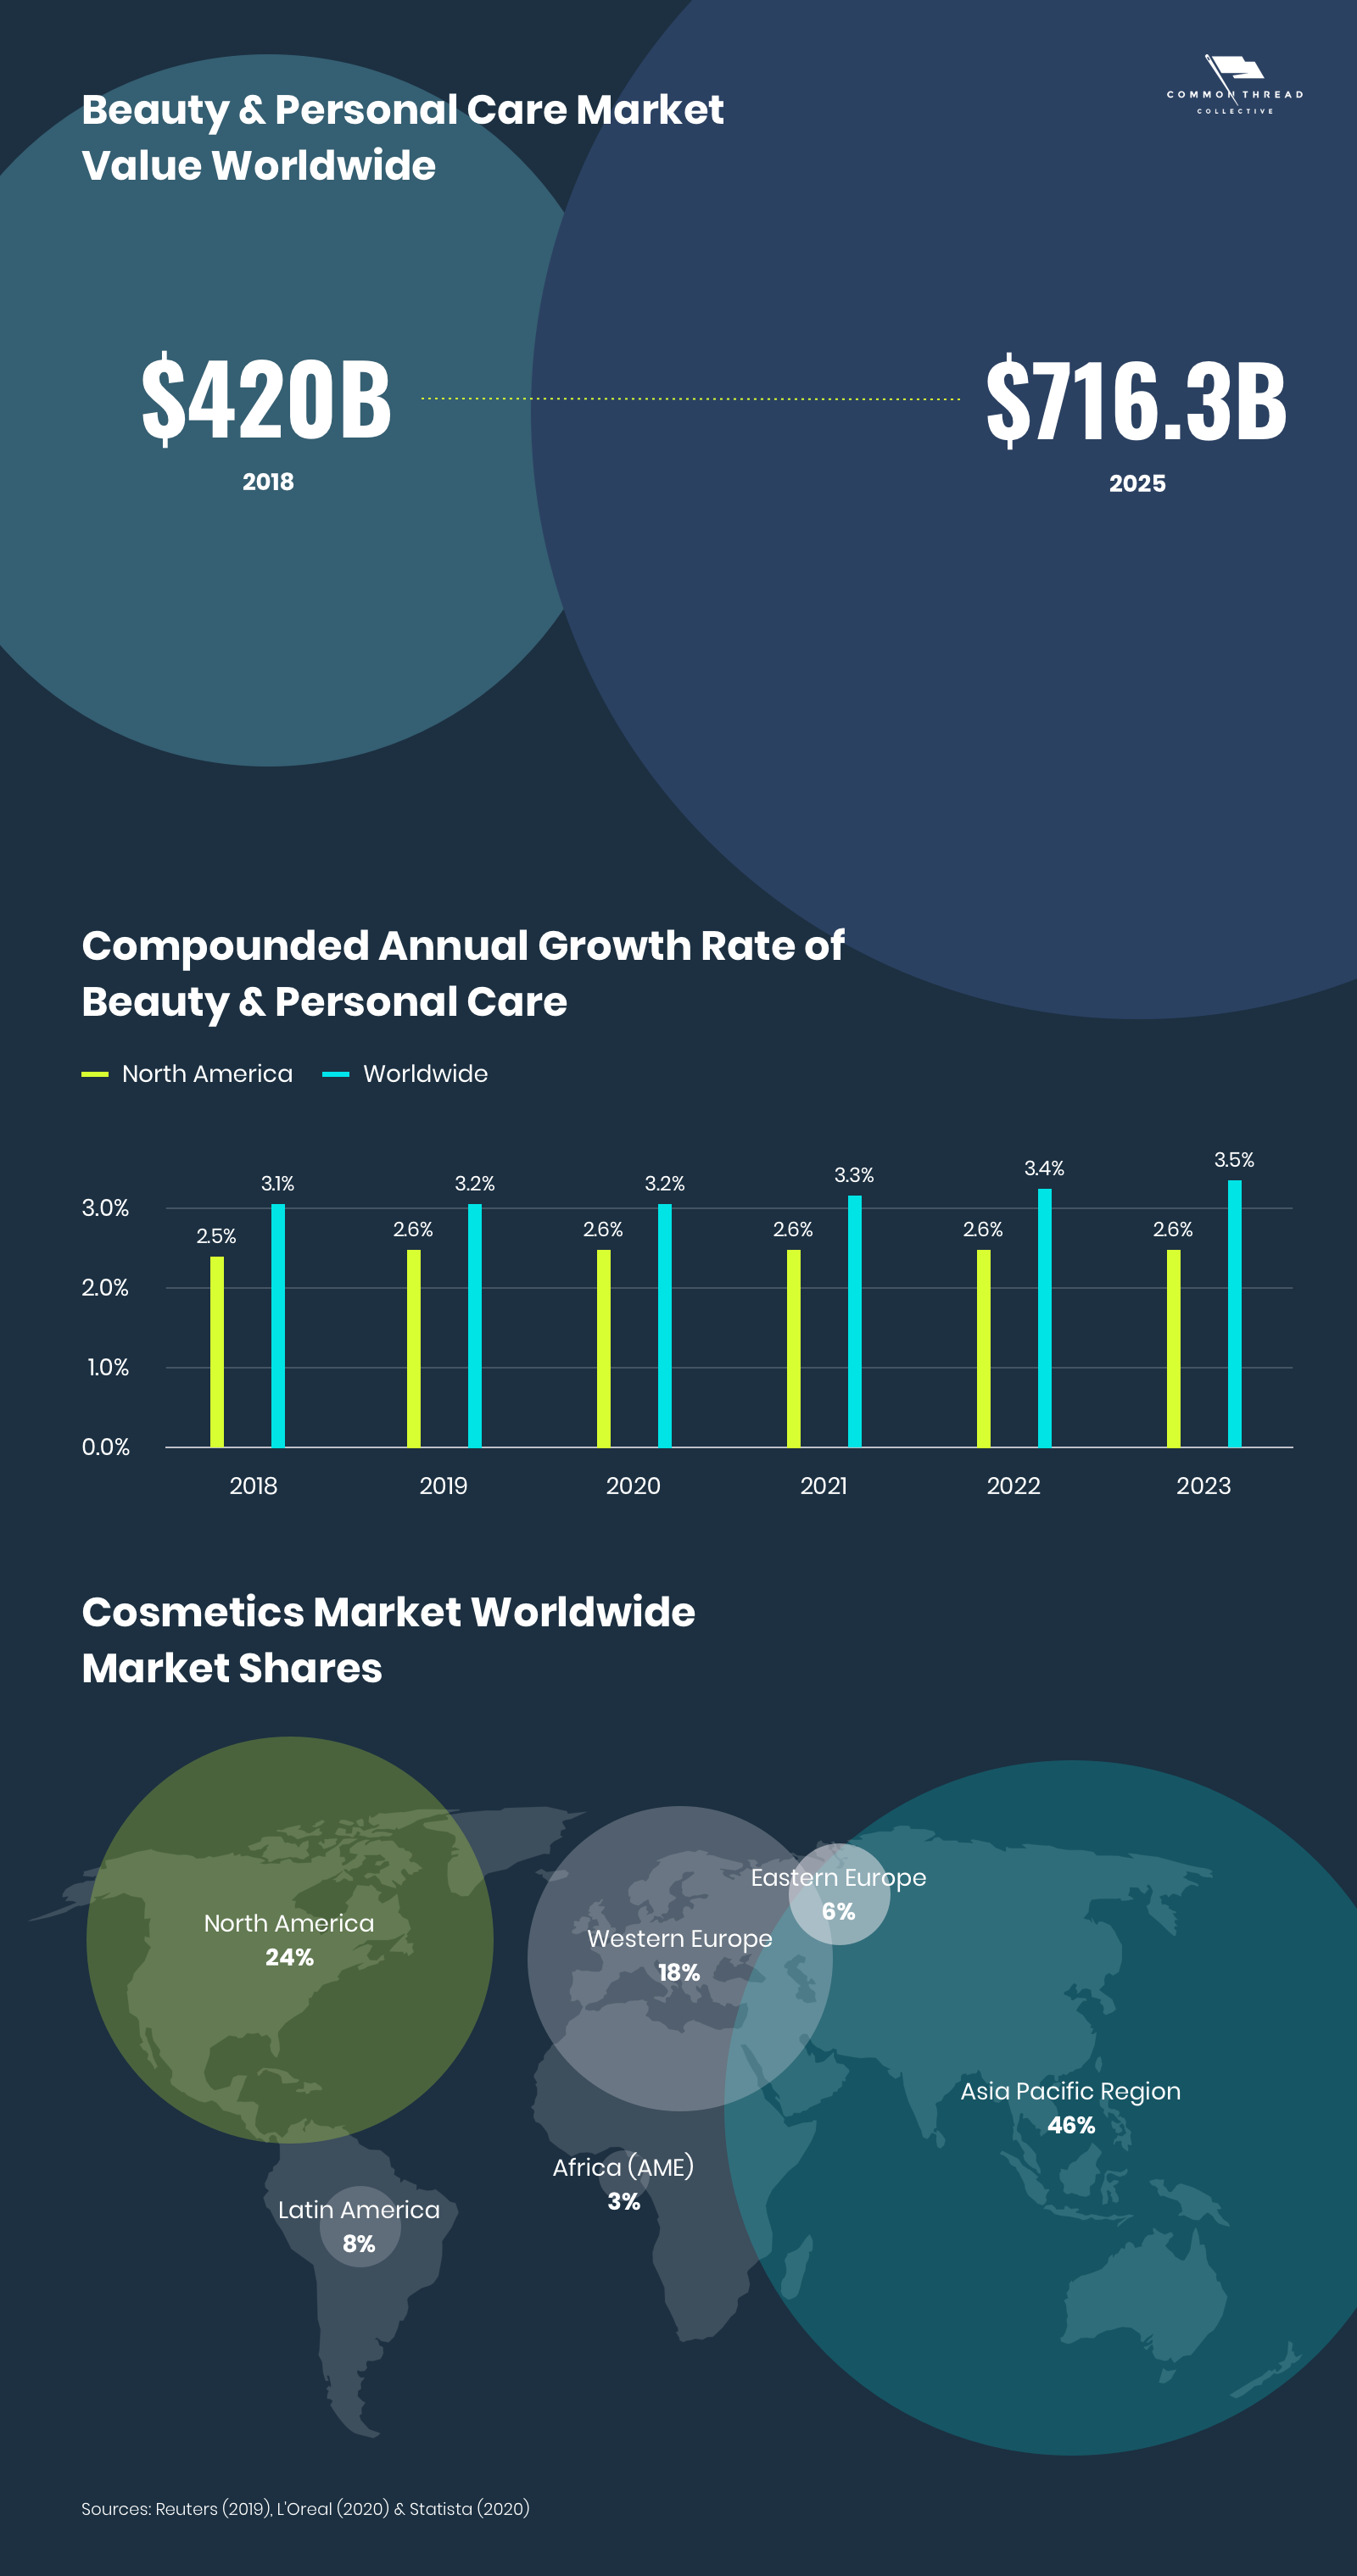 Beauty, Cosmetics, and Personal Care Markets Worldwide